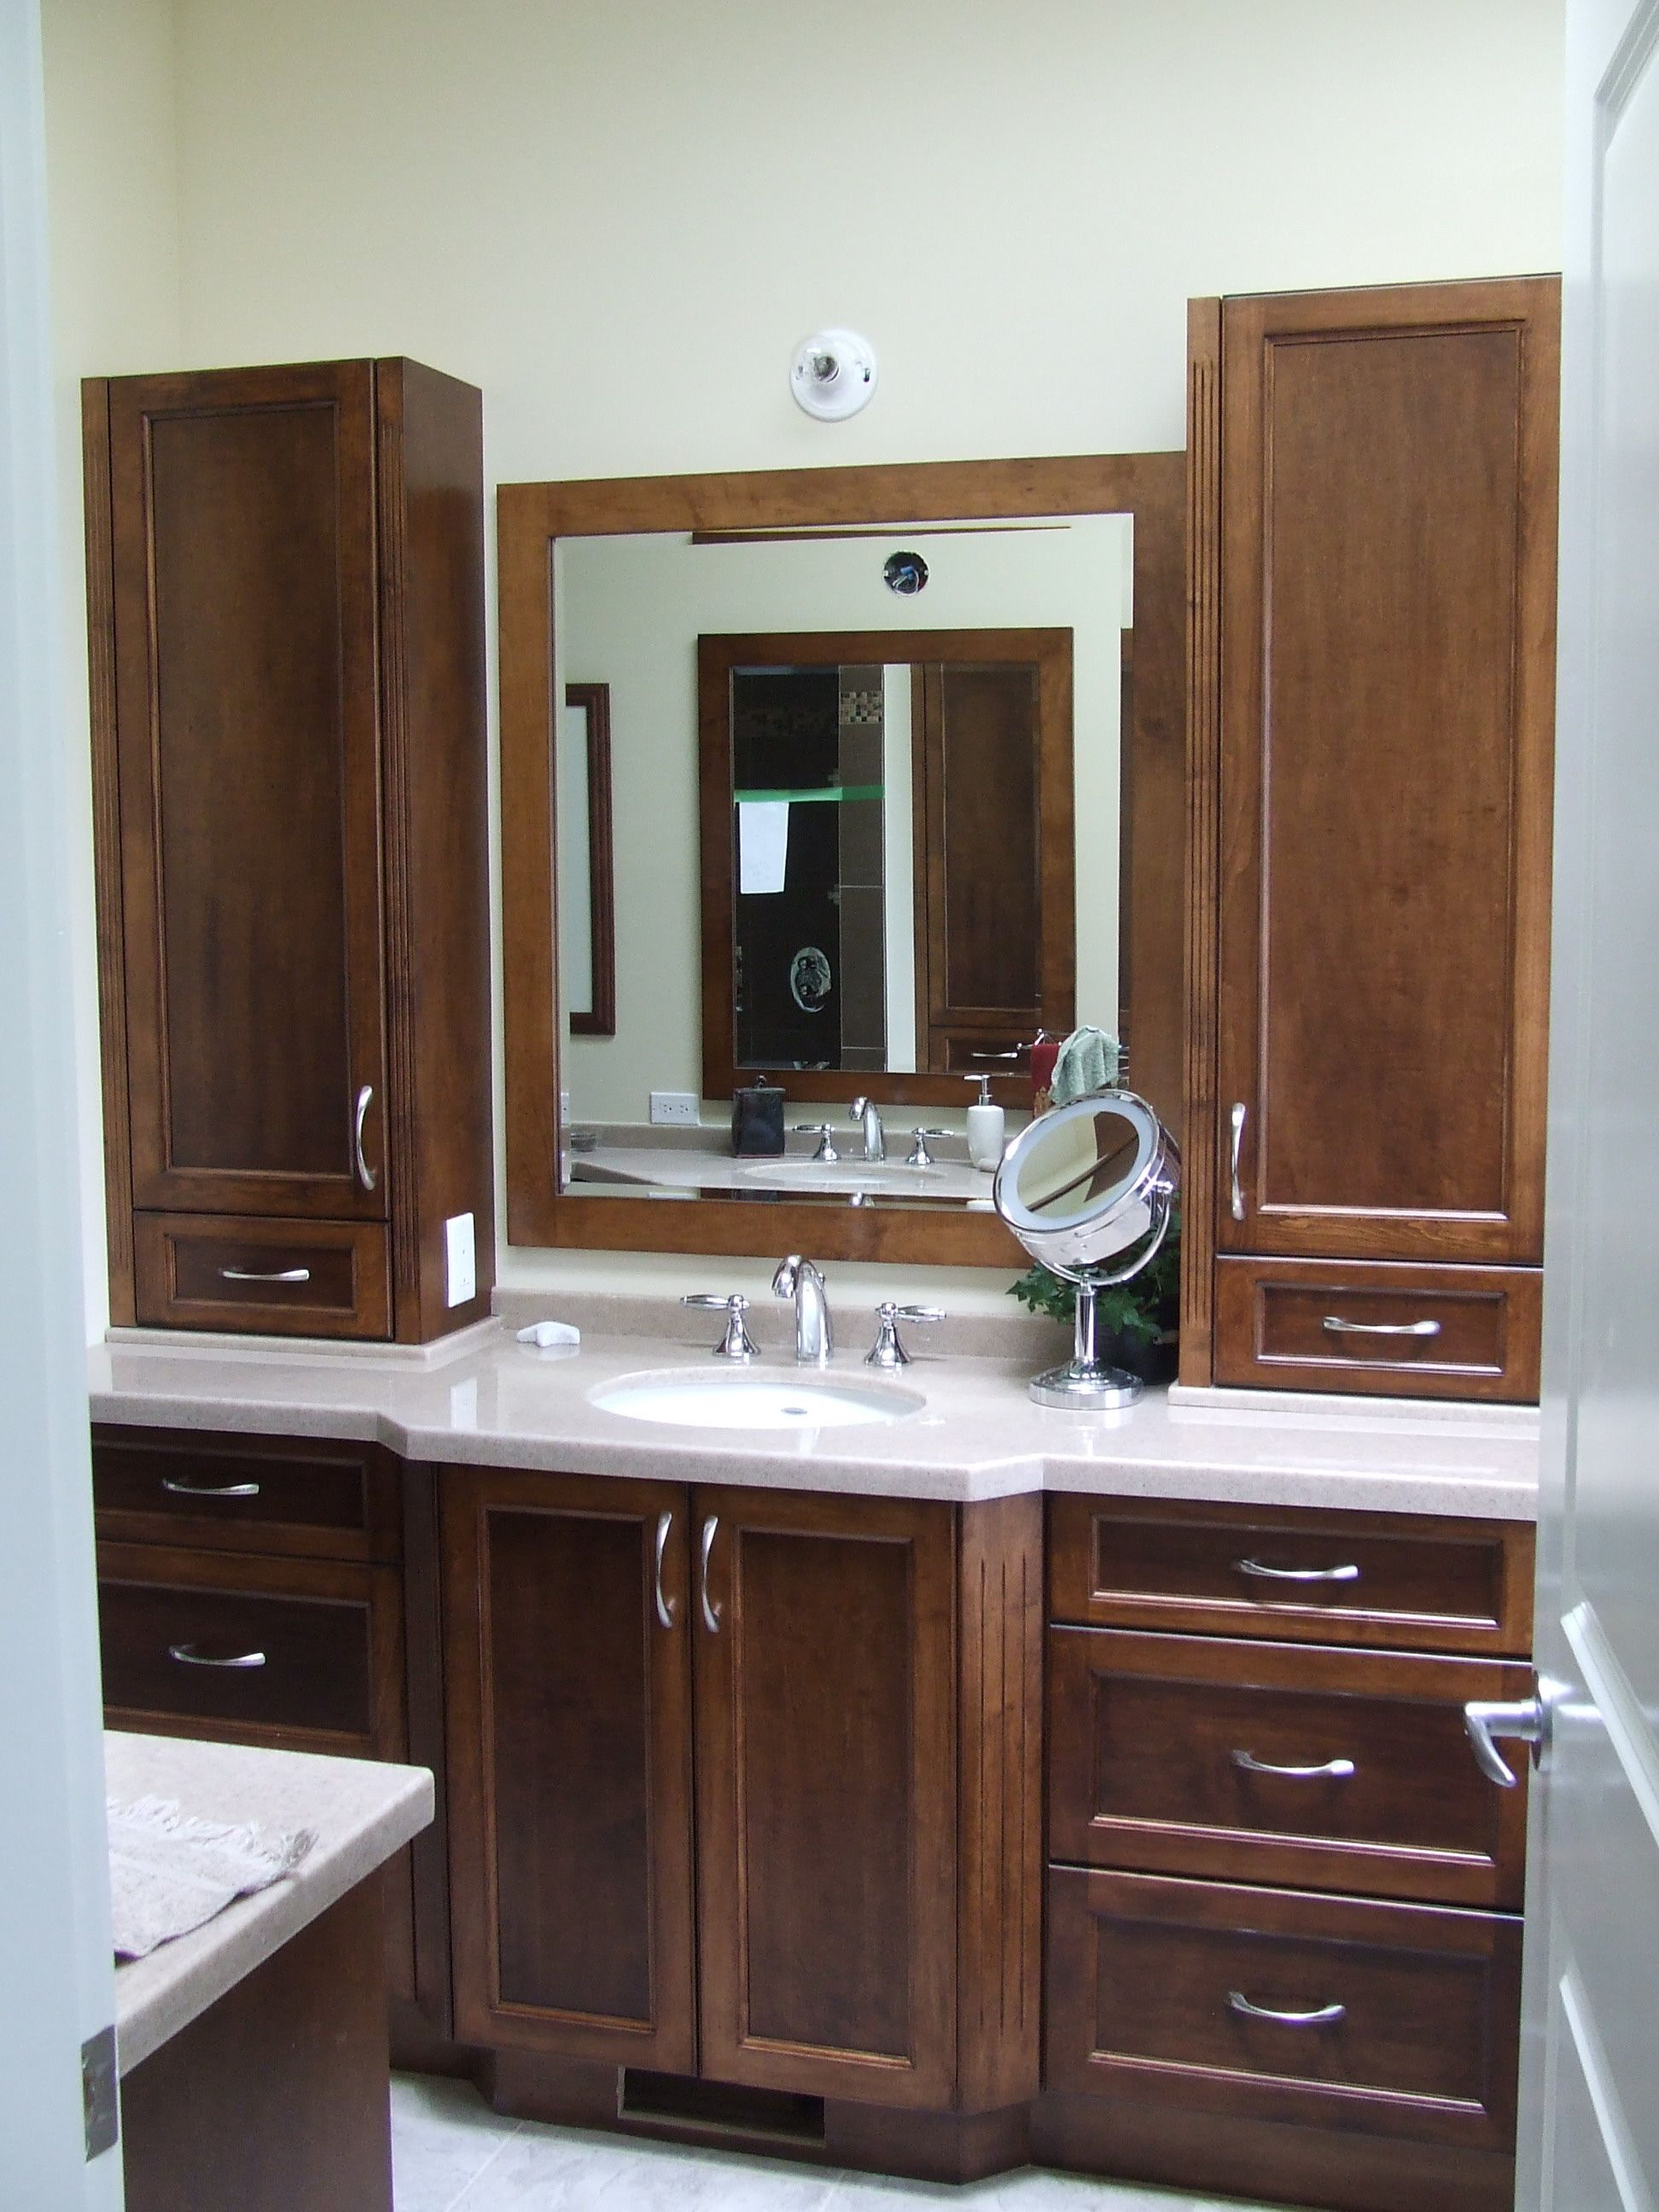 This Ensuite was a custom color on a Maple Shaker door Mirror frame made to Bathroom VanitiesMirrors